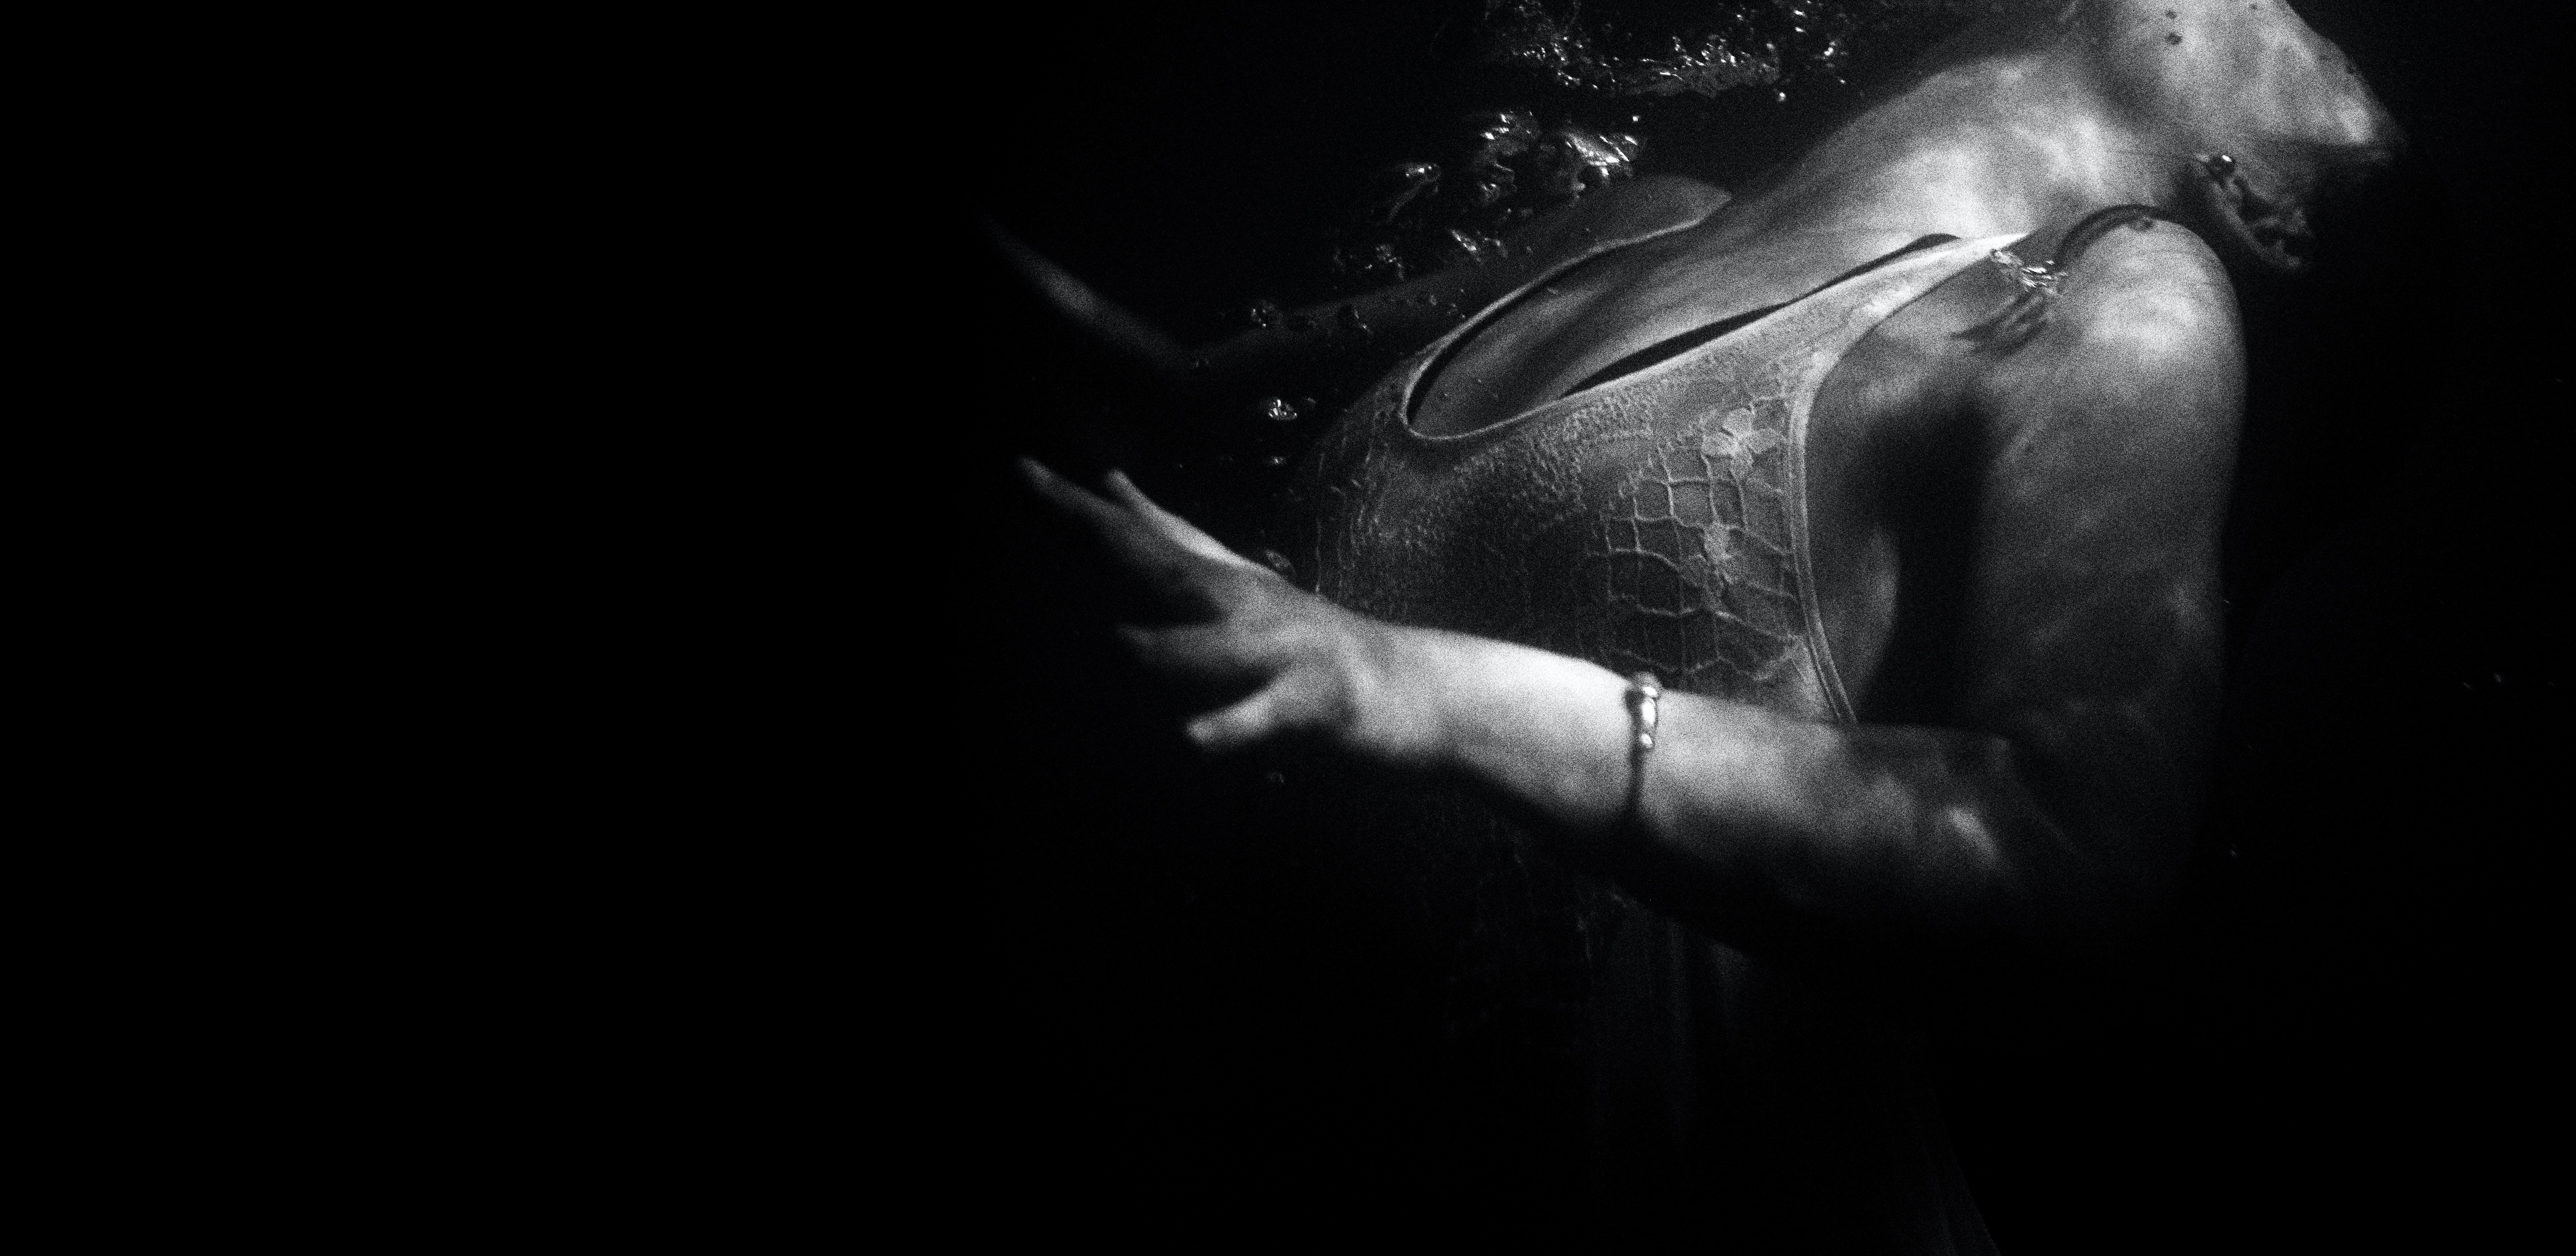 Black and white underwater picture of woman hand and body submerged, Tallebudgera Creek